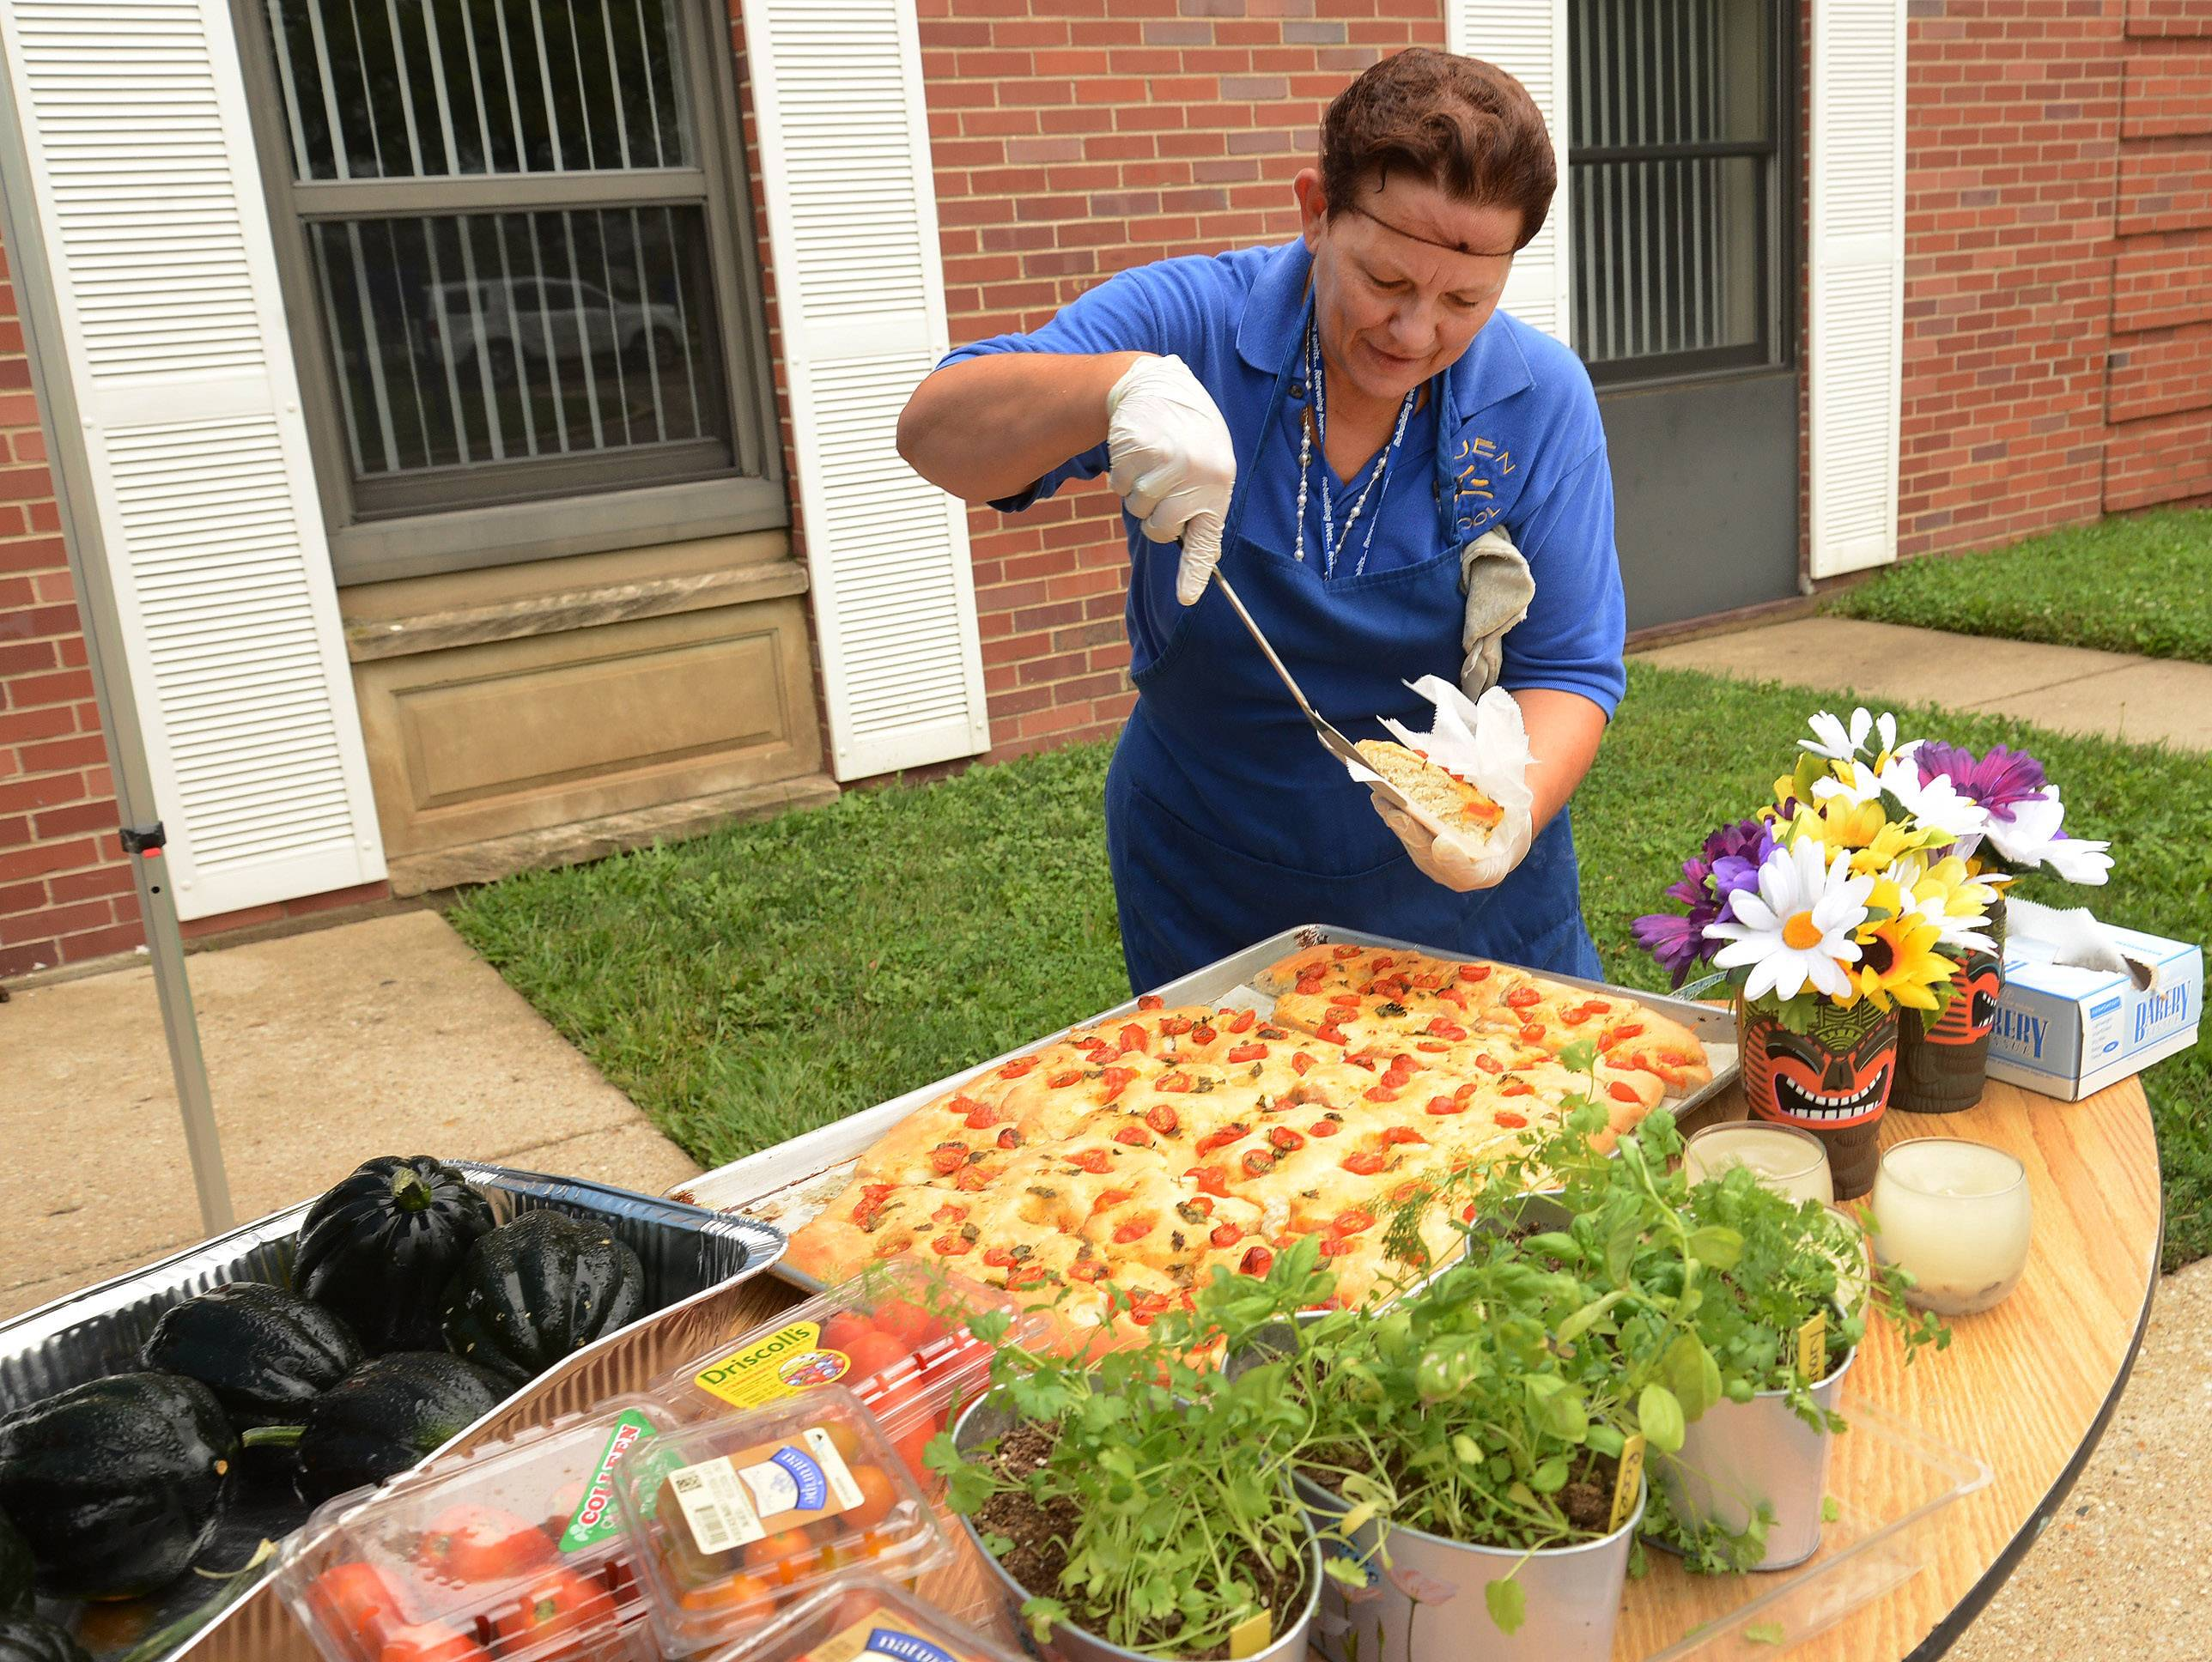 Chef Toni Tomasello slices up focaccia made with tomatoes and basil from students selling their own homegrown produce at Maryville Academy.